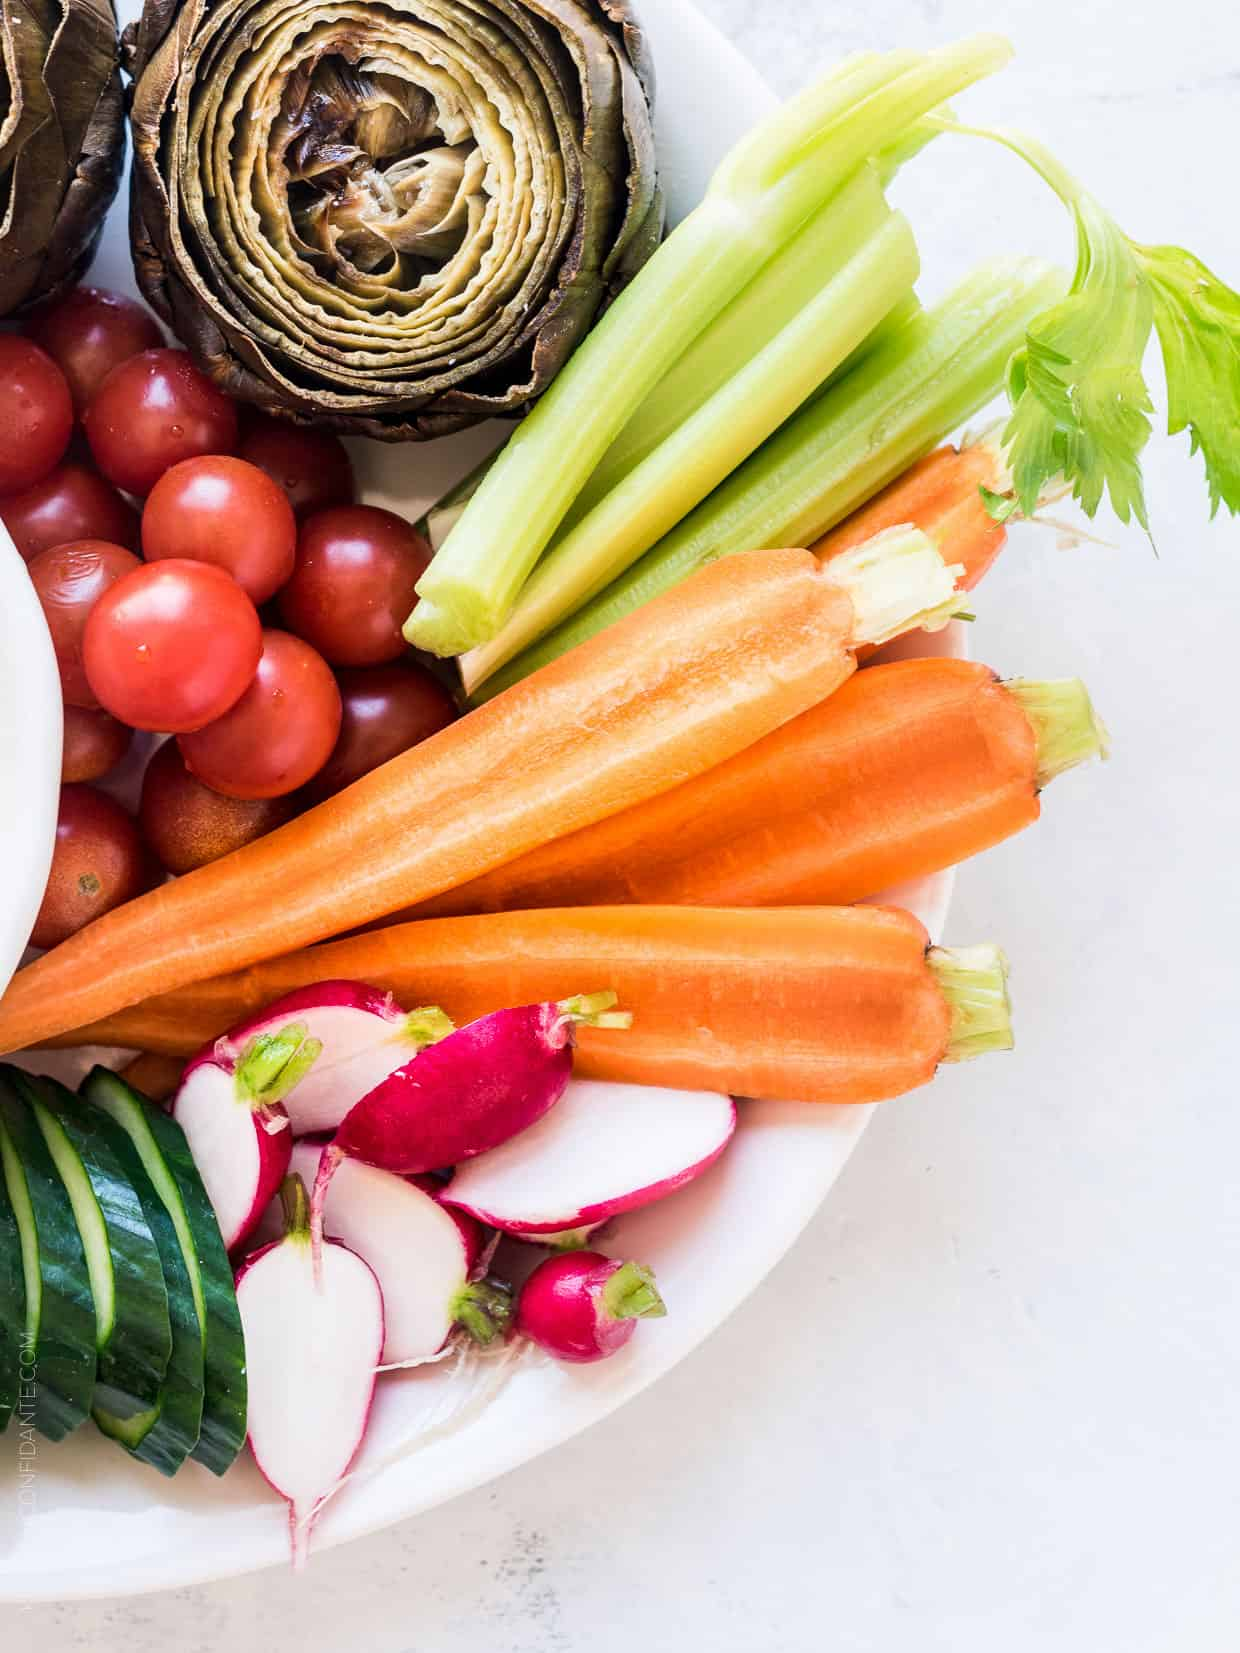 A platter of fresh vegetables including celery, tomatoes, radishes, carrots, and cucumbers.